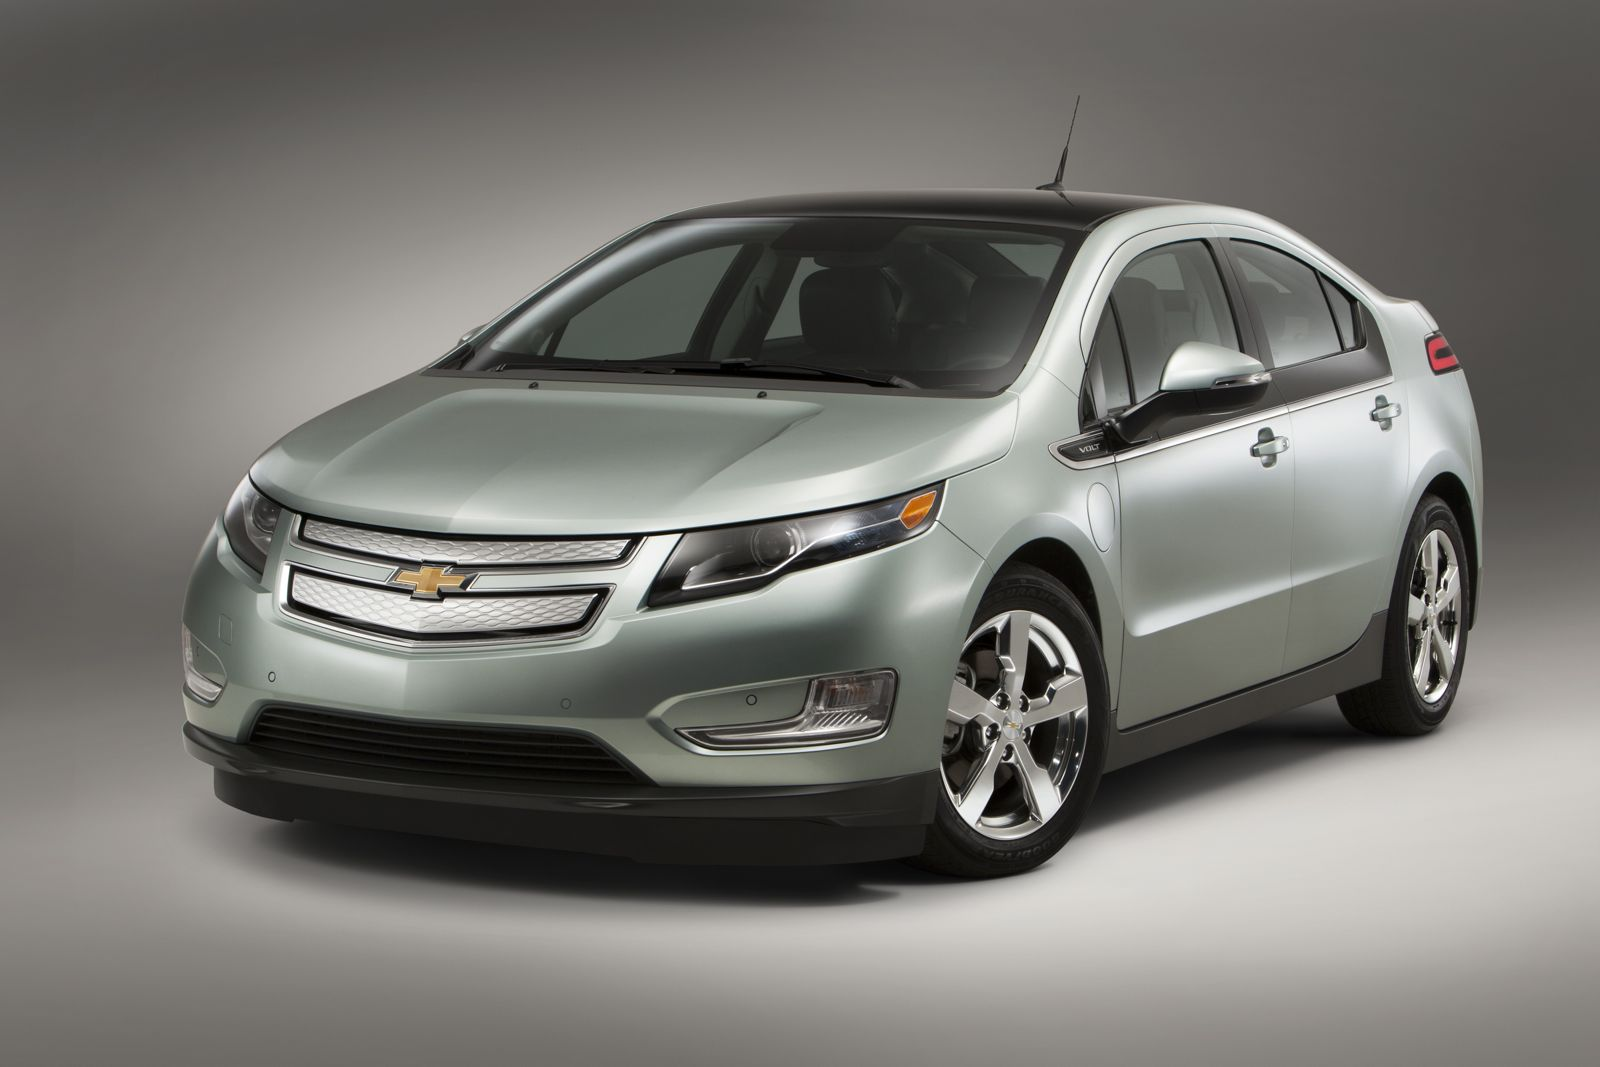 All Chevy chevy cars 2012 : Bob Lutz: Huge Chevy Volt Cost Estimates Are Wrong, Here's Why